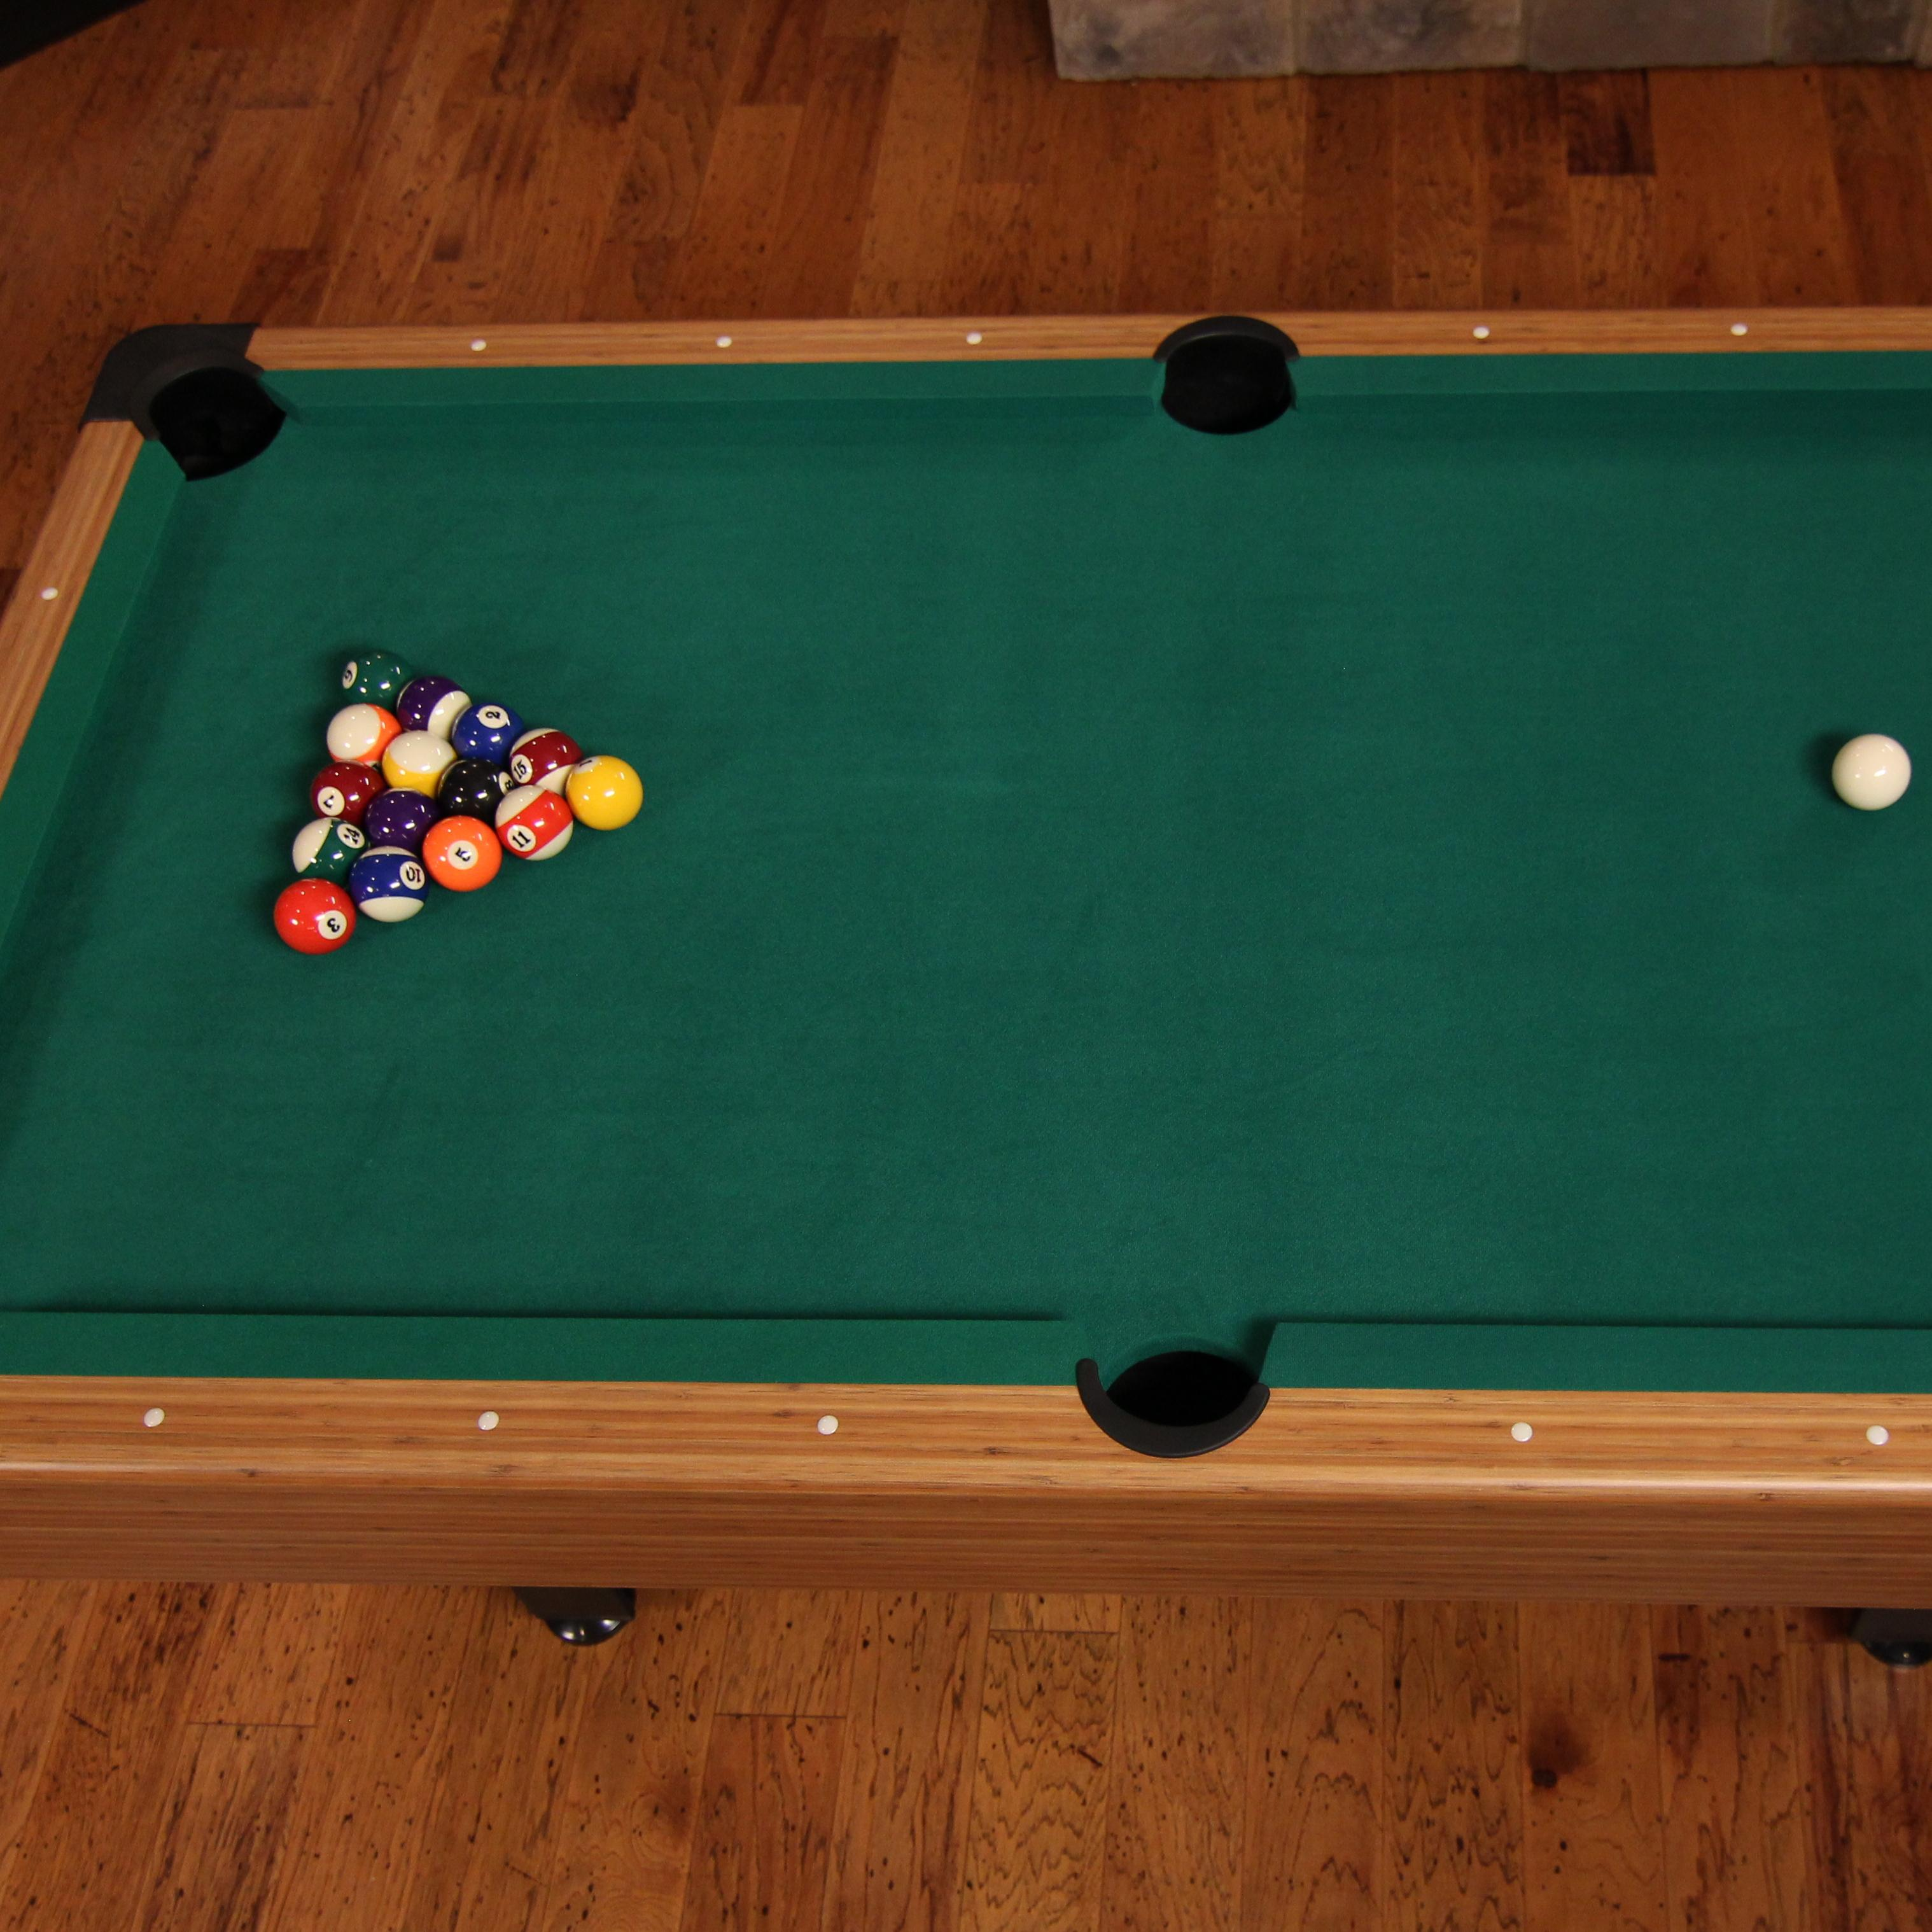 Mizerak dynasty space saver 6 5 39 billiard table pool tables sports outdoors - Space needed for pool table ...